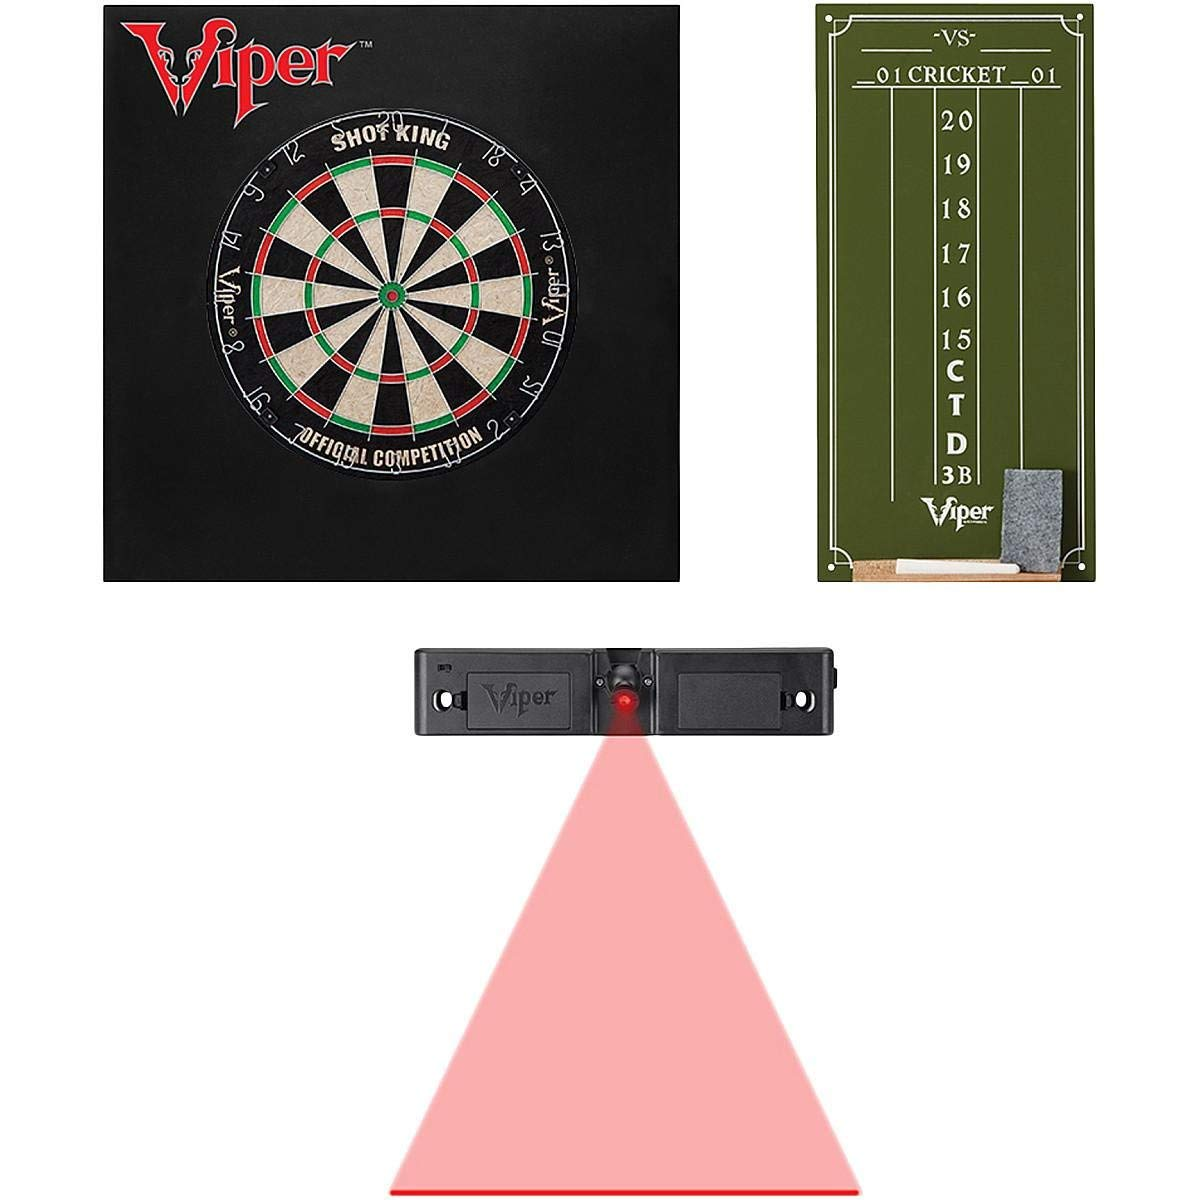 Viper SHOT KING SISAL DARTBOARD, CRICKET SCOREBOARD, DEFENDER II SQUARE BACKBOARD